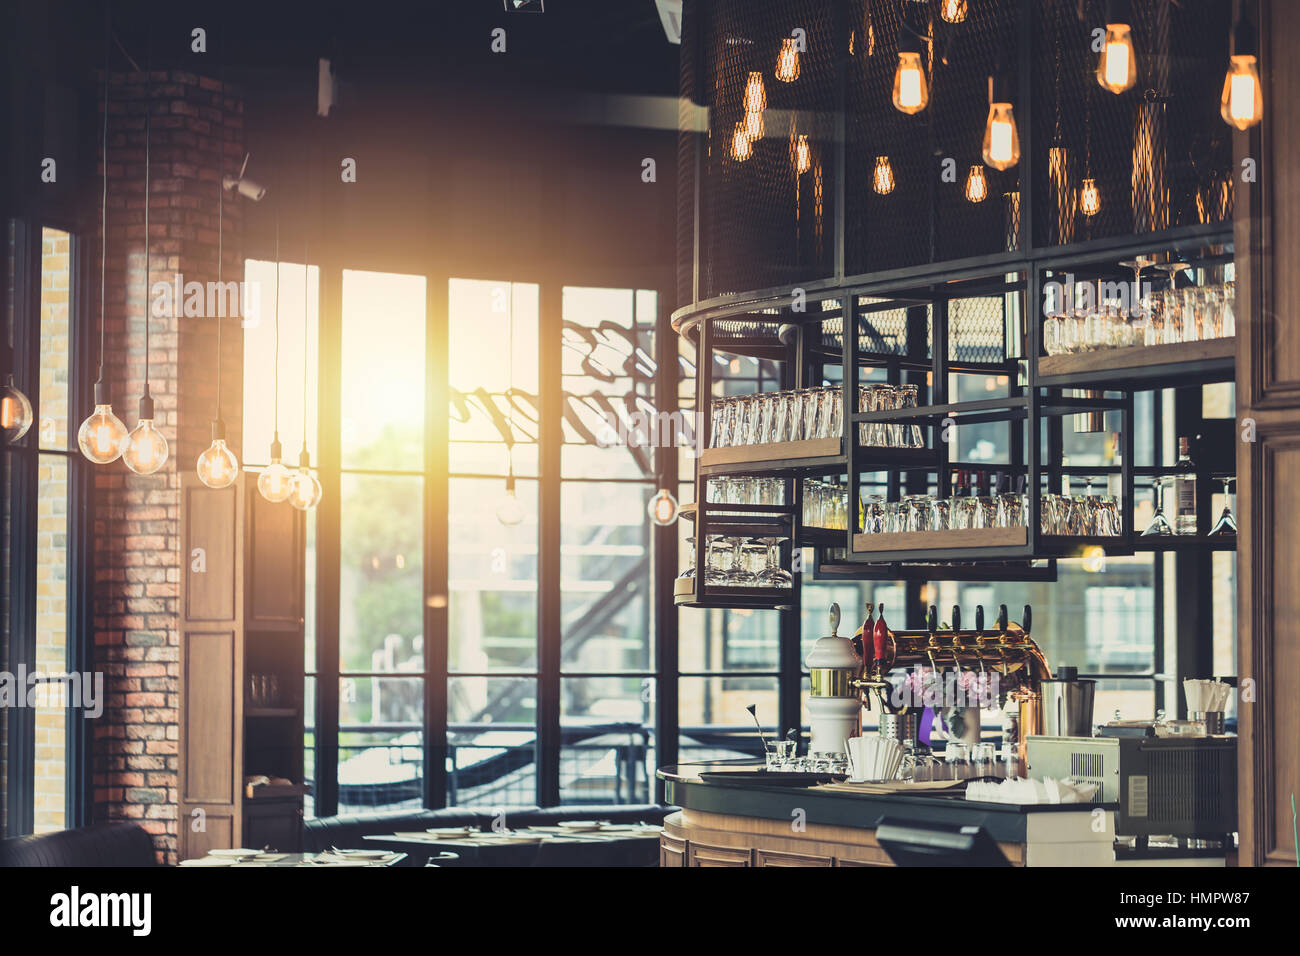 modern loft style restaurant decoration with hanging light bulb beer stock photo 133268471 alamy. Black Bedroom Furniture Sets. Home Design Ideas